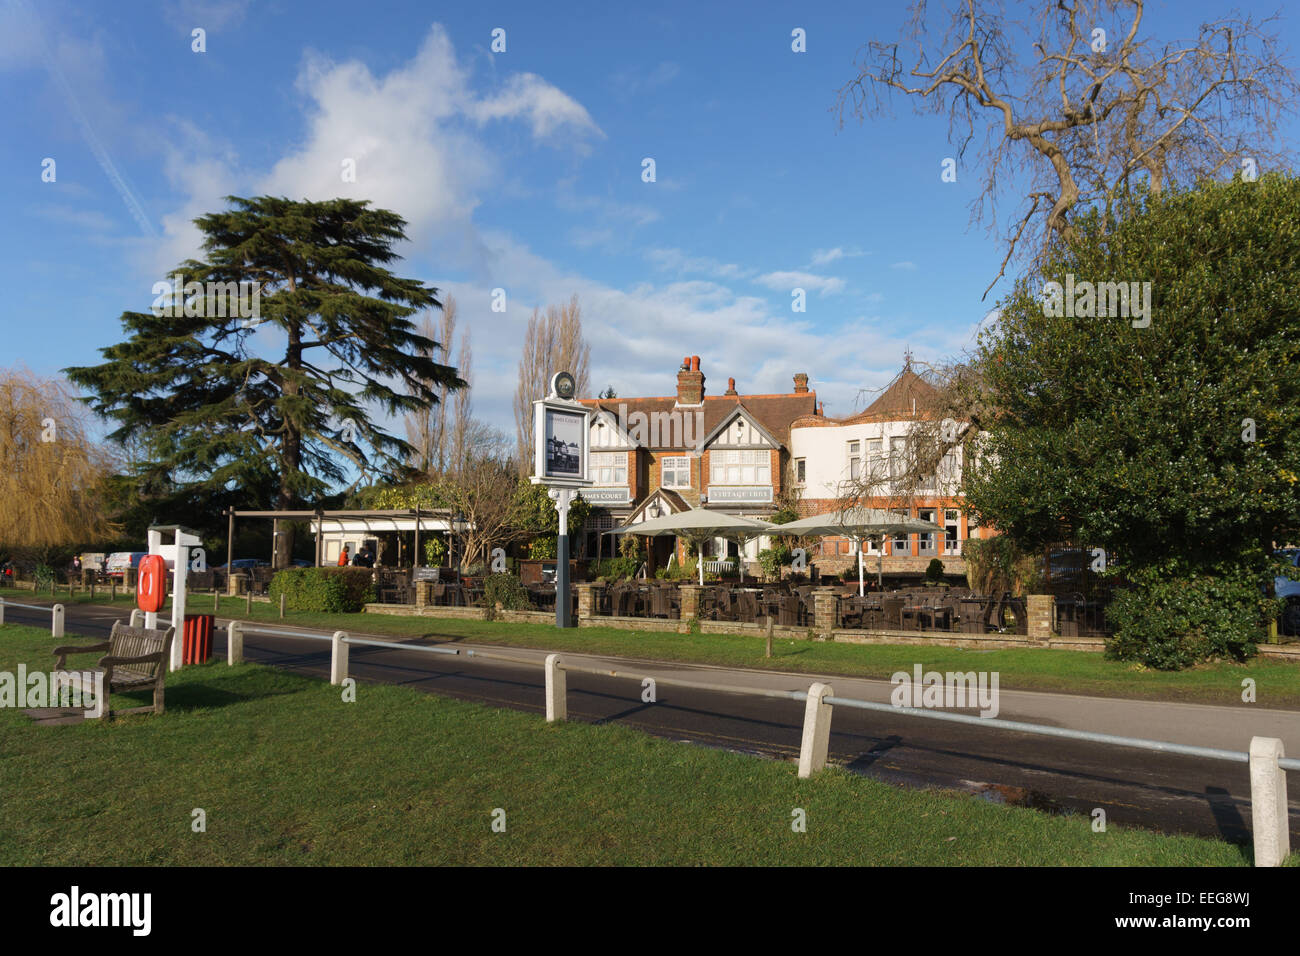 The Thames Court in on the River Thames in Shepperton, UK near London on a bright sunny day - Stock Image